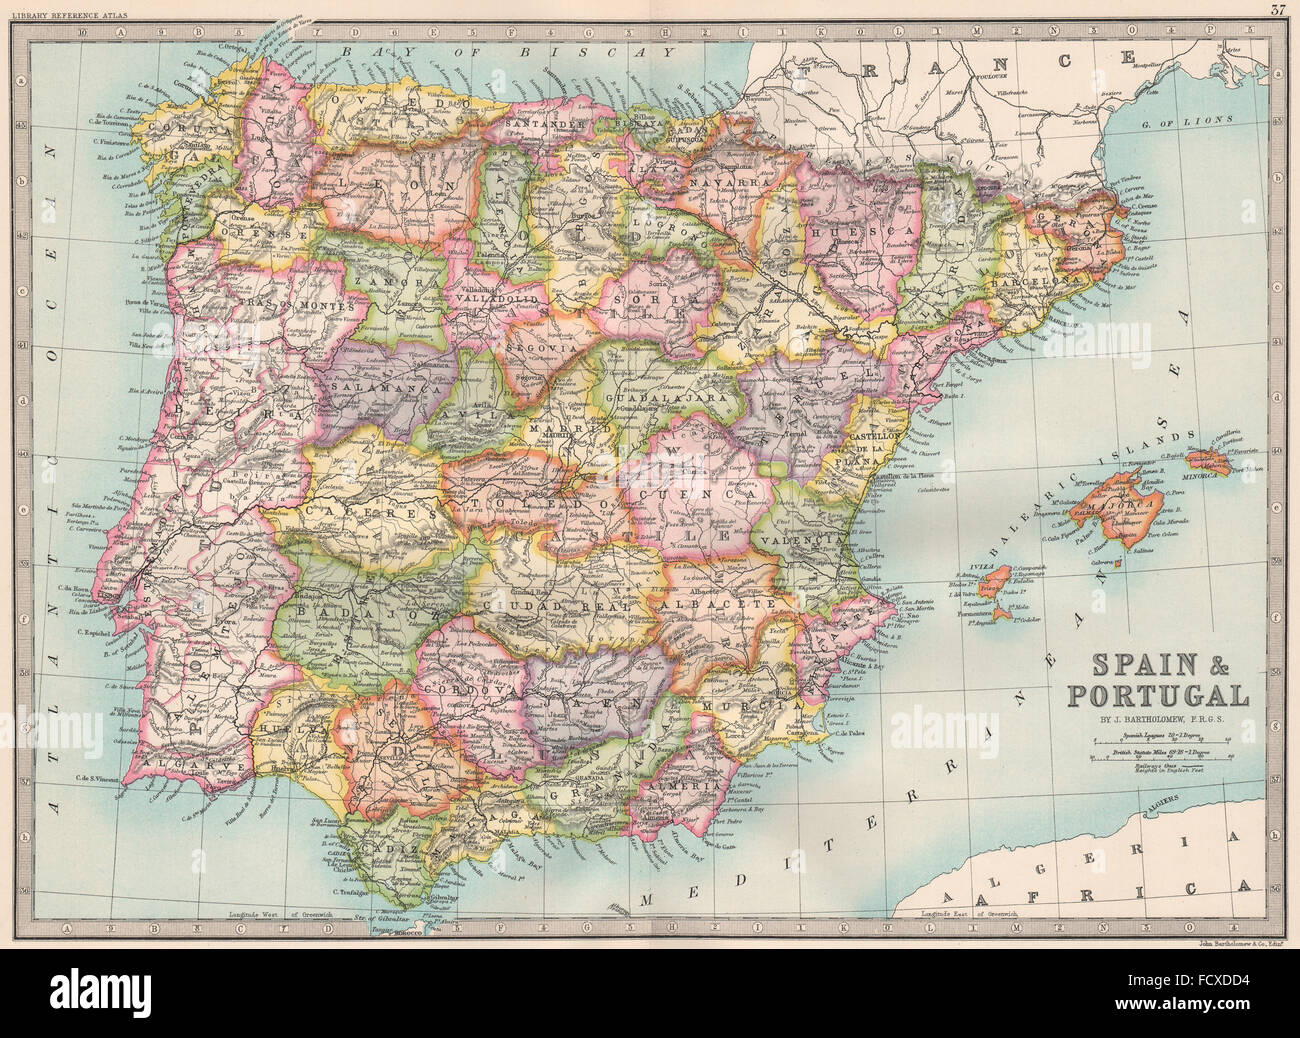 IBERIA: Spain & Portugal. Provinces. BARTHOLOMEW, 1890 antique map on spain map, portugal location on map, ural mountains map, herculaneum map, latin map, spanish language, mediterranean map, austria map, scandinavian peninsula, strait of gibraltar, spanish inquisition, poland map, iberian peninsula map, black sea, rock of gibraltar, italian peninsula, roman empire map, european map, arabian peninsula, the british isles map,